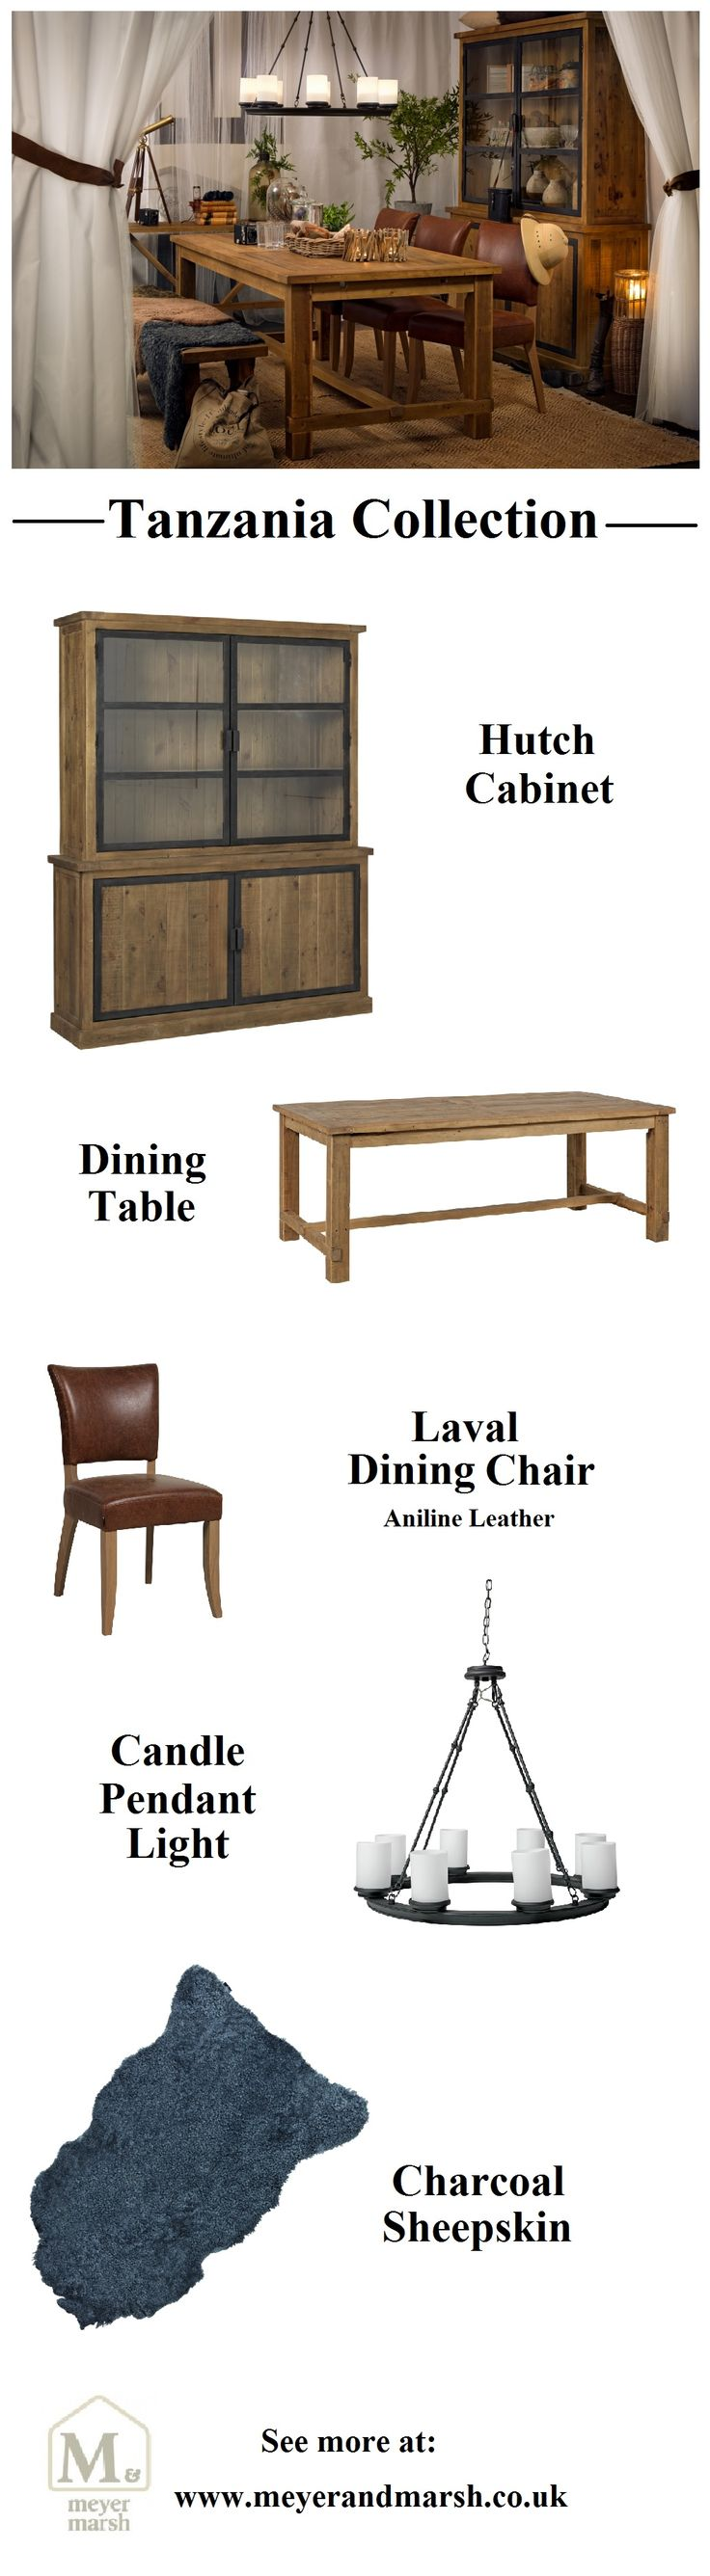 Tanzania Dining Collection @ Meyer & Marsh #meyerandmarsh #diningroom #homedecor